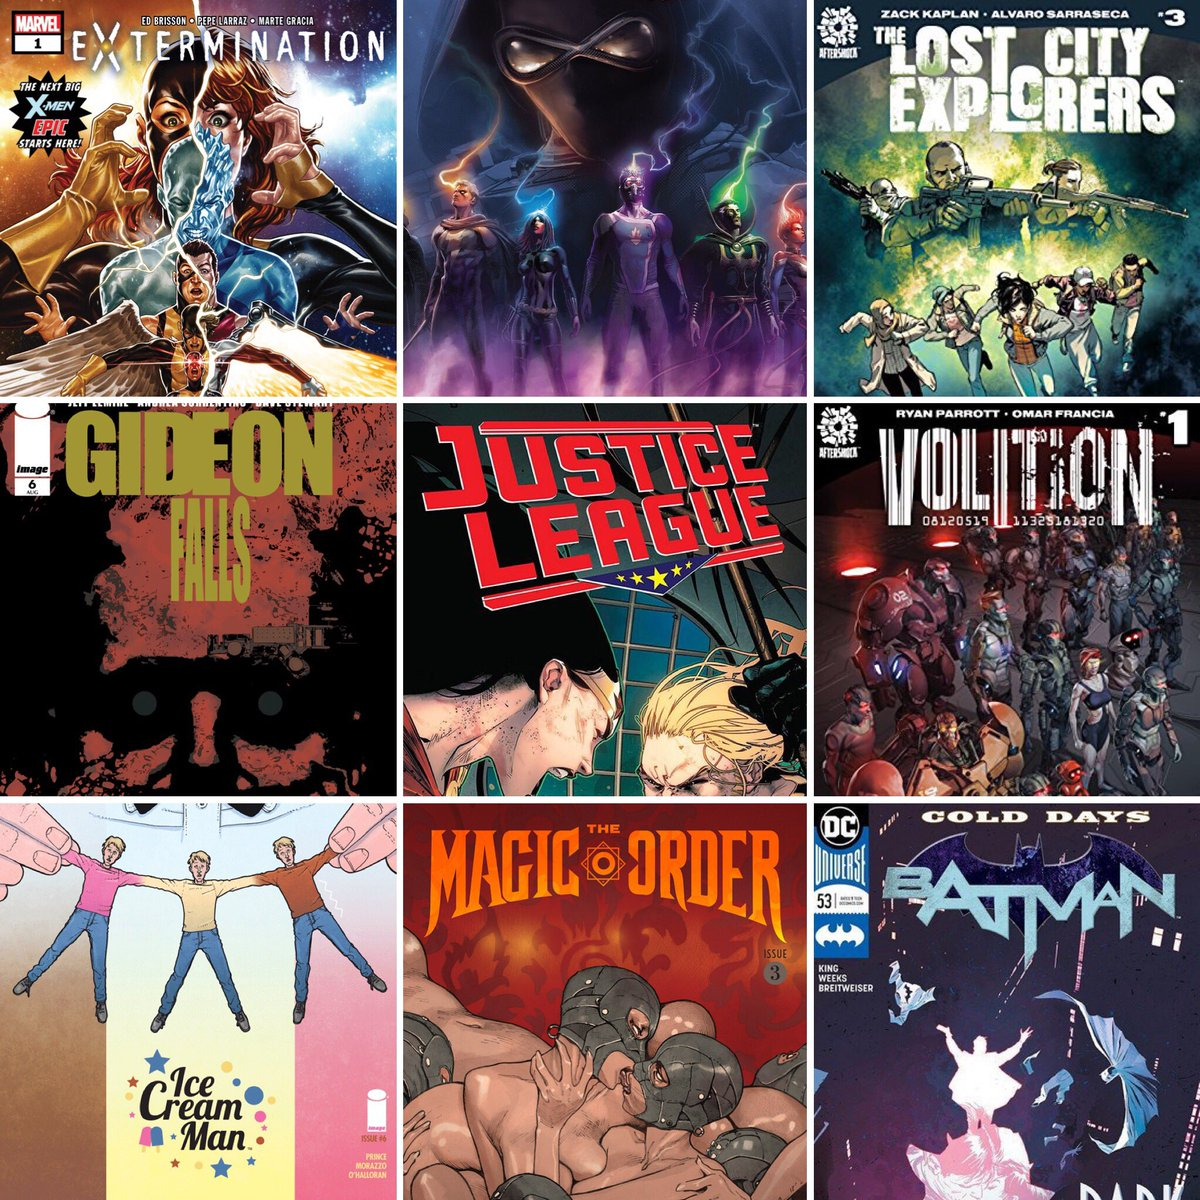 ICYMI: we reveal our Top 10 comics of the week.   #Xmen #InfinityWars #Batman #JusticeLeague #LostCityExplorers #Volition #IceCreamMan #MagicOrder #Pearl #Skyward #Crowded #Marvel #dccomics #ImageComics #Aftershock #comicbooks #PodernFamily    http:// traffic.libsyn.com/nationofnerds/ NoN-Aug16.mp3 &nbsp; … <br>http://pic.twitter.com/rIMyRmx4I4